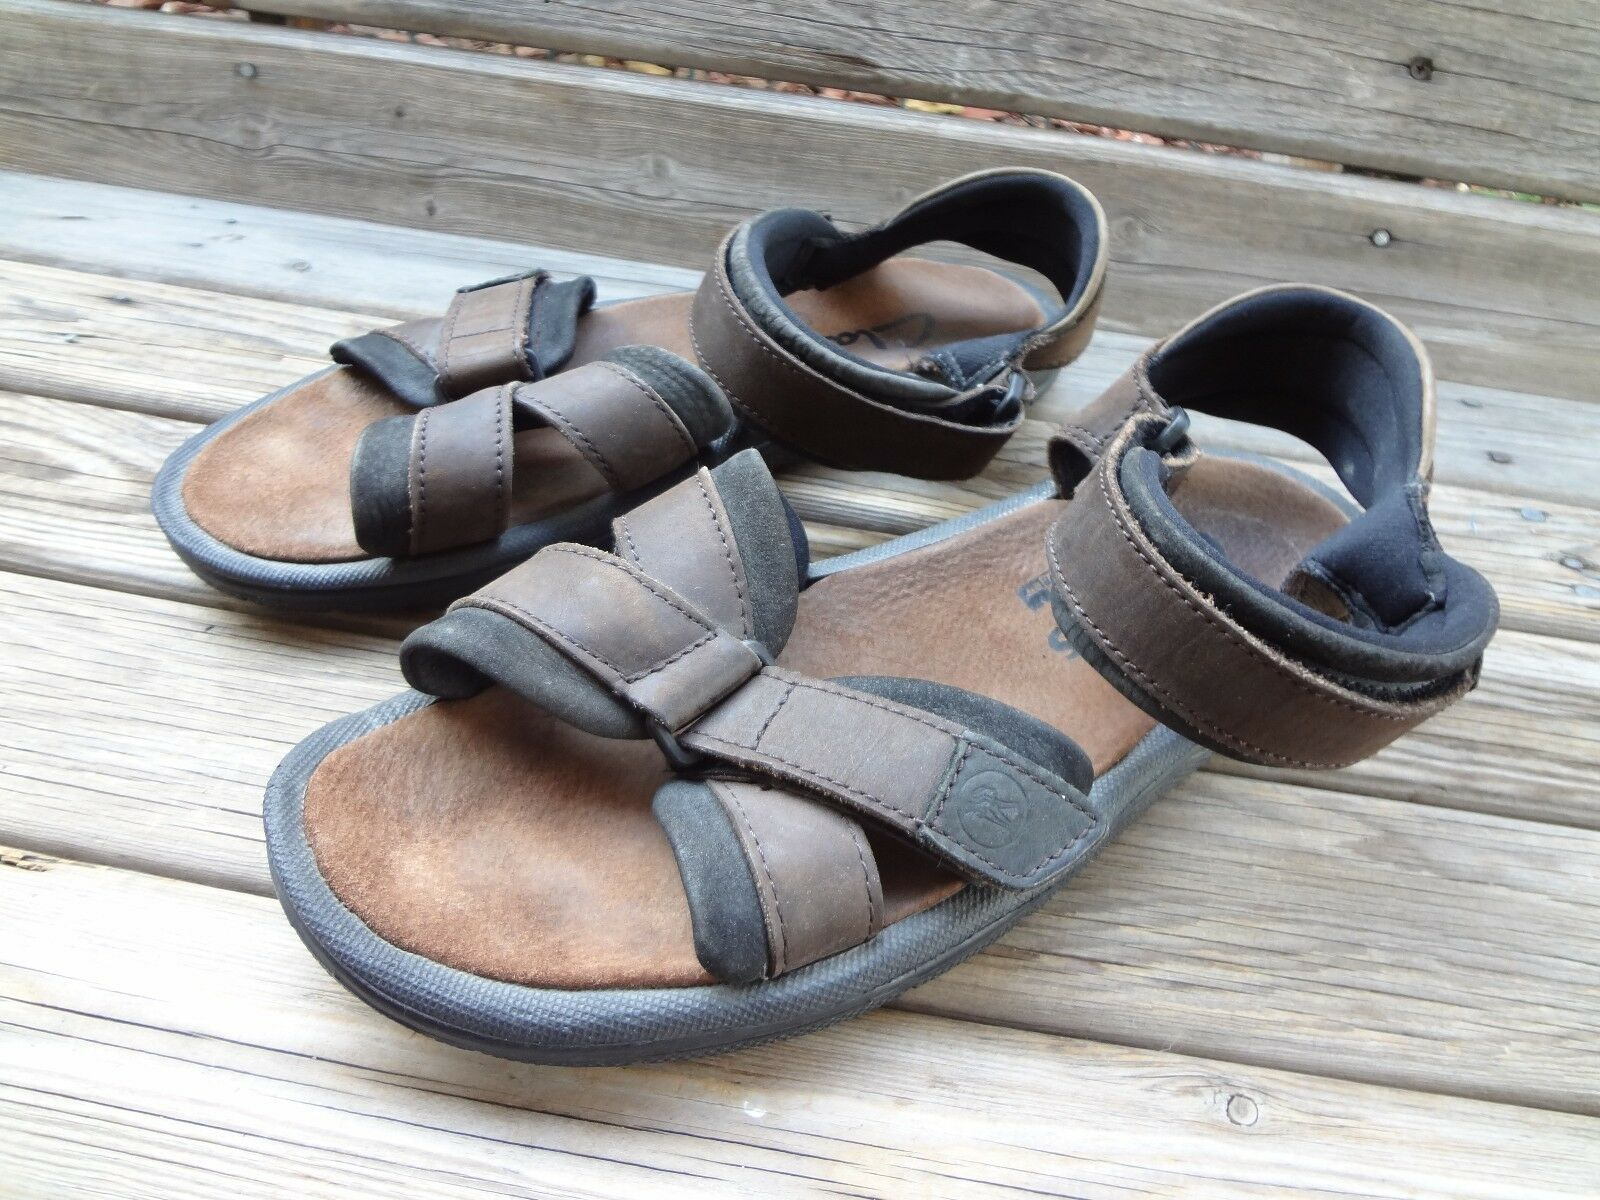 CLARKS ACTIVE AIR BROWN LEATHER  SANDALS SHOES MENS SIZE 13 M-W   Adjust